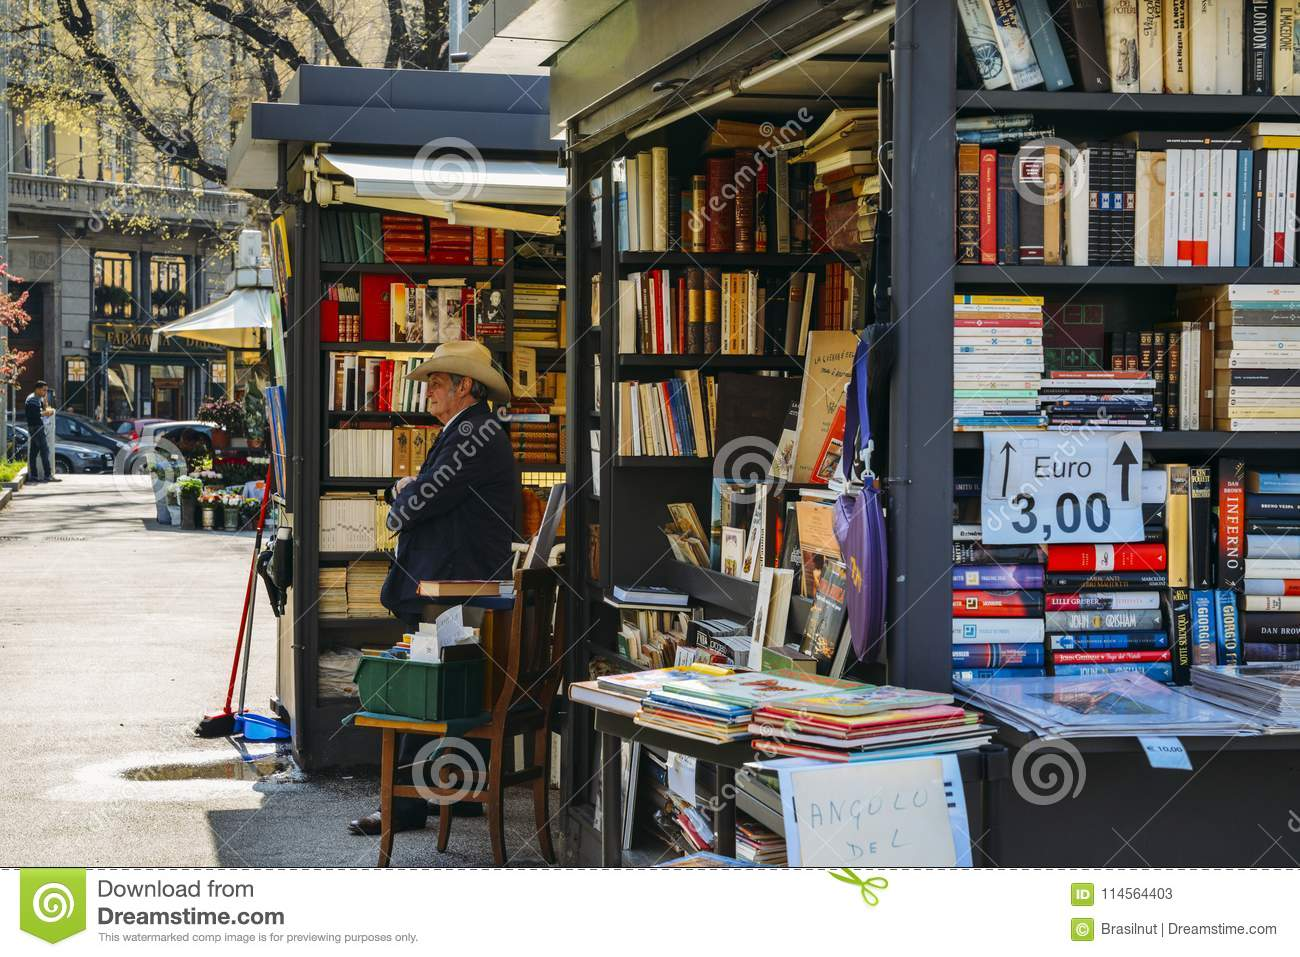 An older man with a cowboy hat sells books on the street